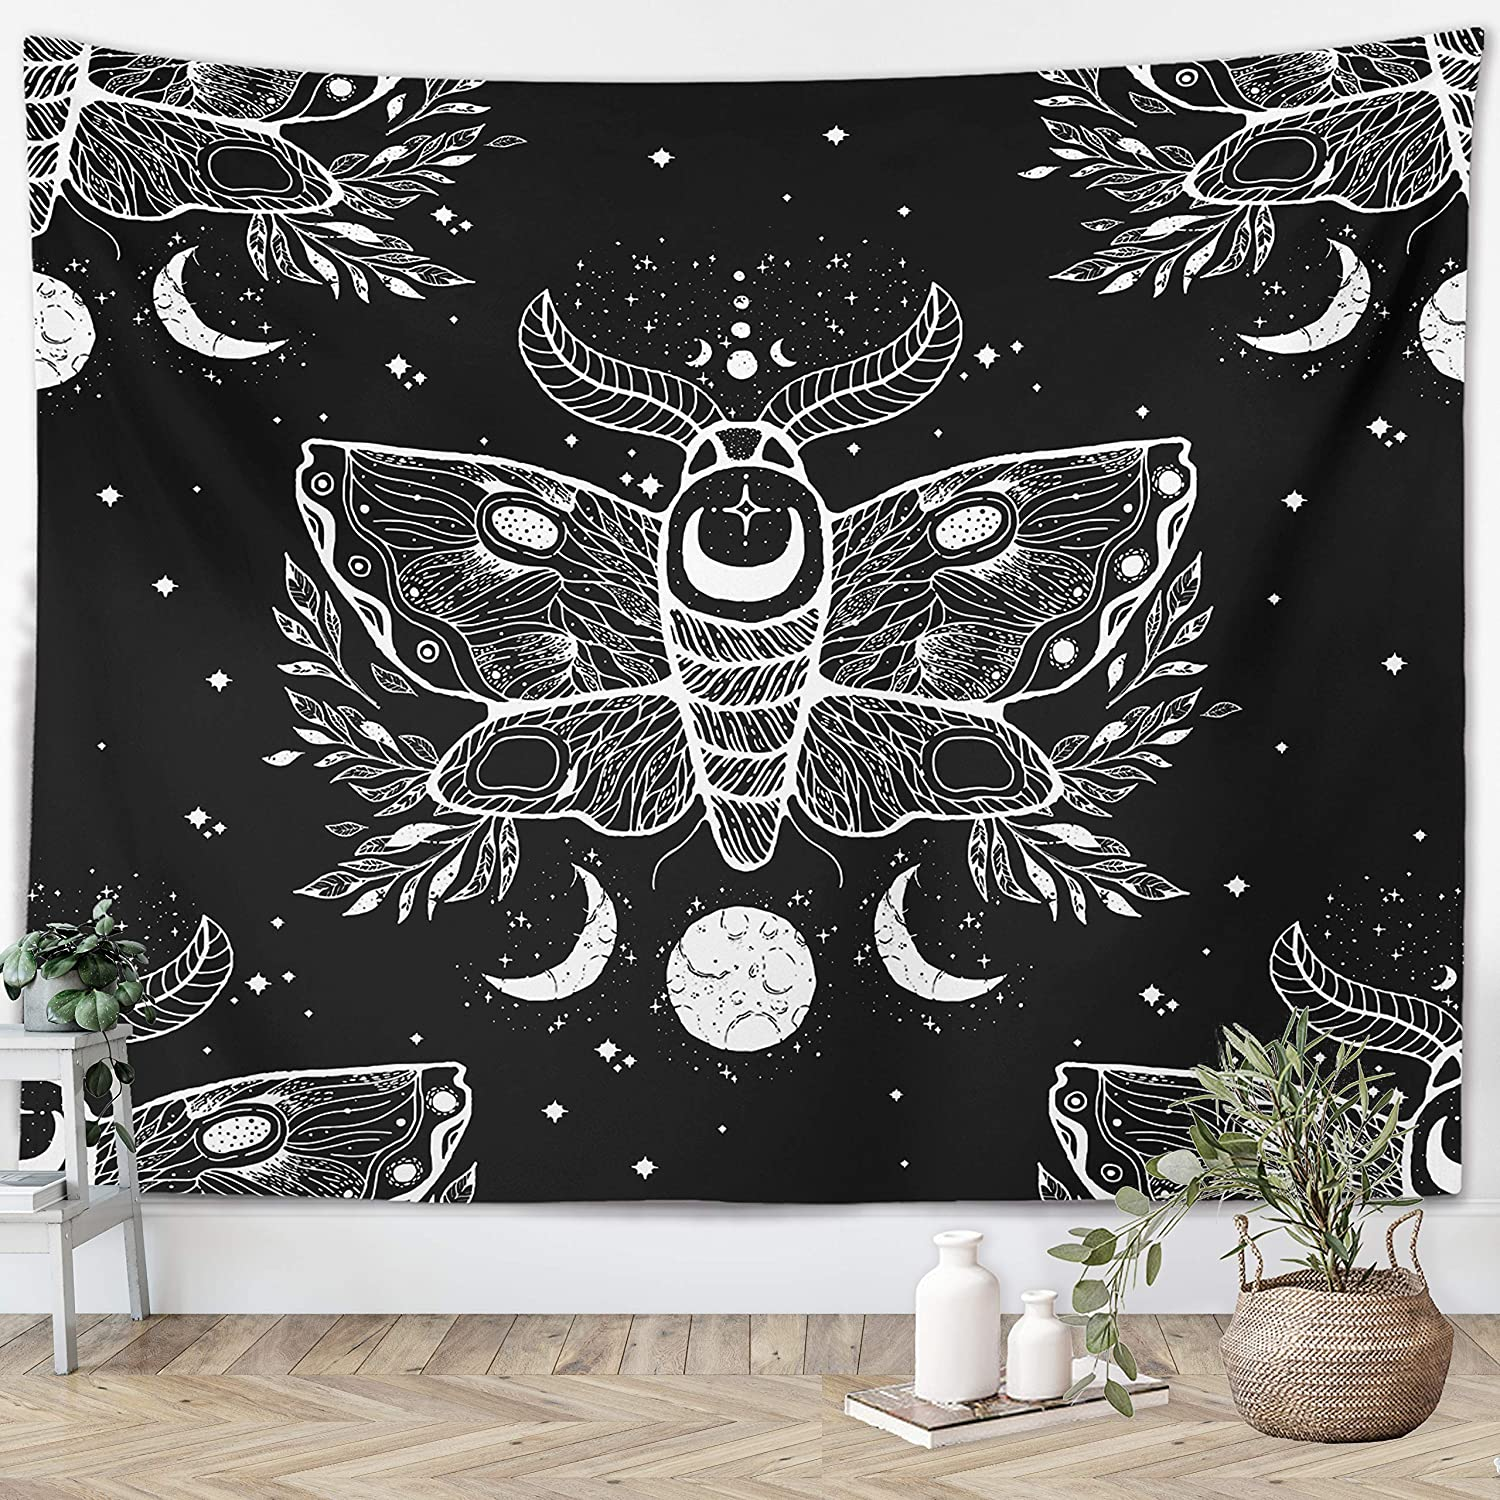 """Witchy Gothic Tapestry Witchcraft Wicca Mystical Moth Moon Skulls Spooky Magic Witch Kit Black White Wall Hanging Goth Dorm Decor Witch Wall Hanging for Bedroom Living Room (Black Moth, 51""""x59"""")"""